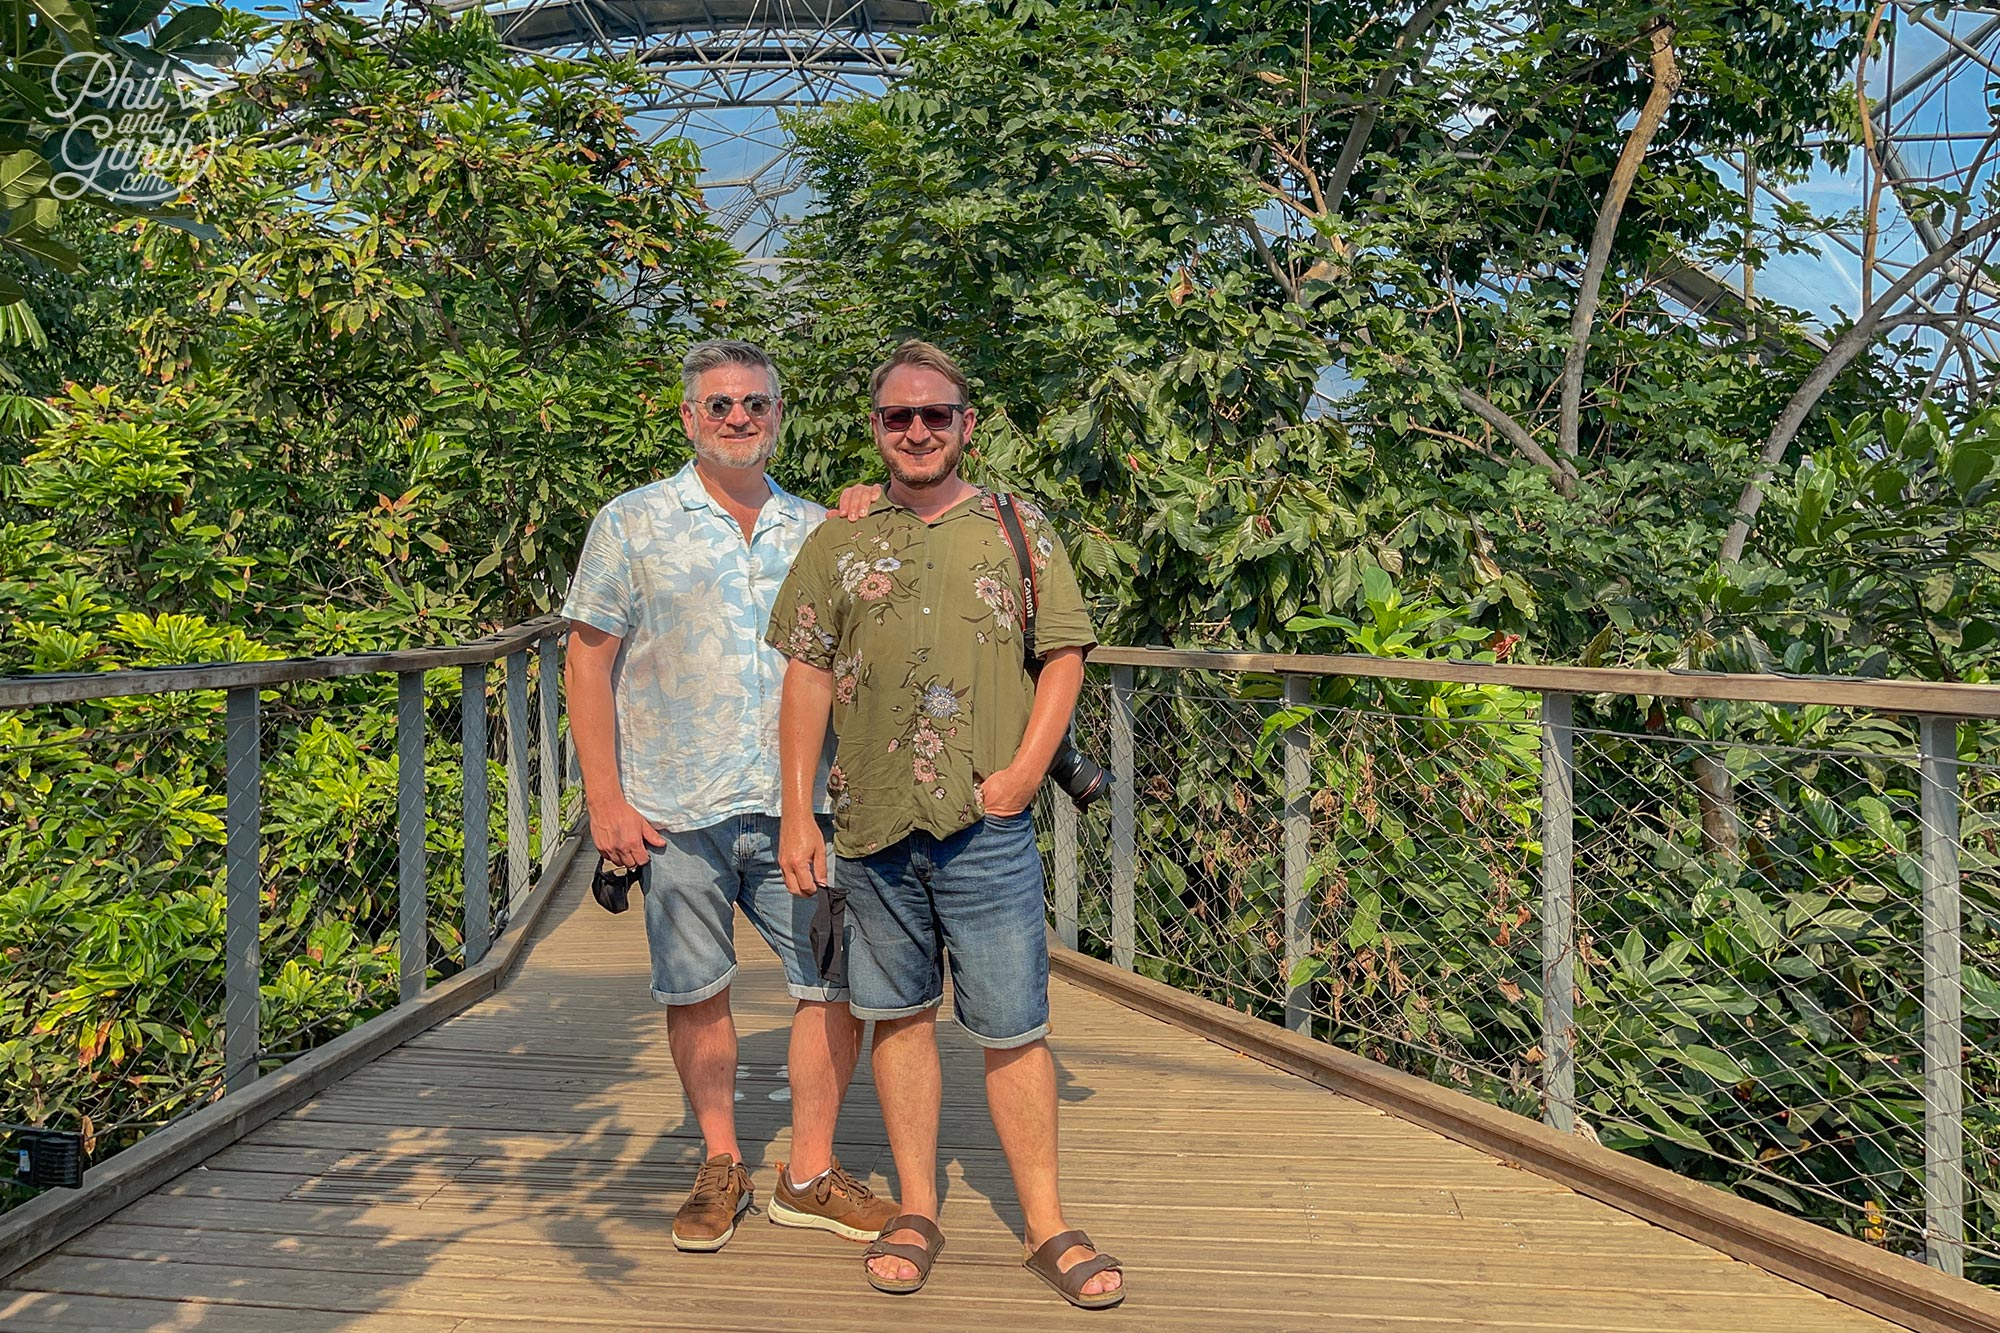 Standing on one of the raised Rainforest Canopy Walkway in the rainforest biome